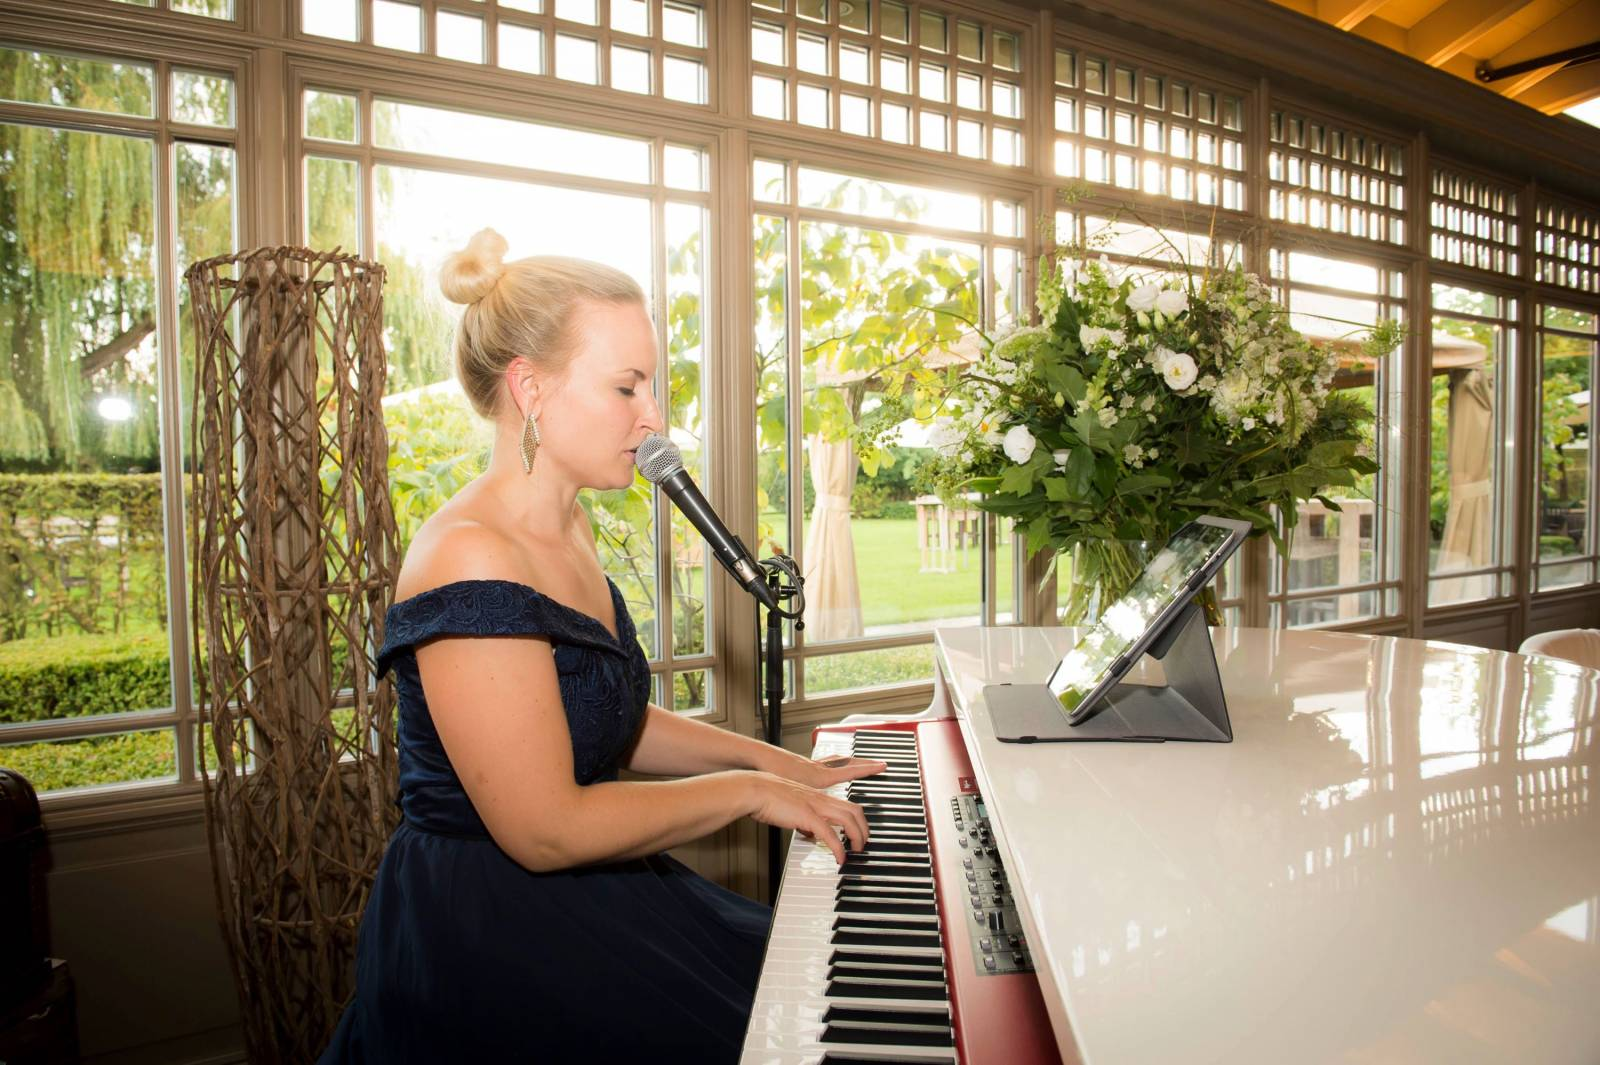 Ellis Grace Wilson - Muziek - House of Weddings  - 23